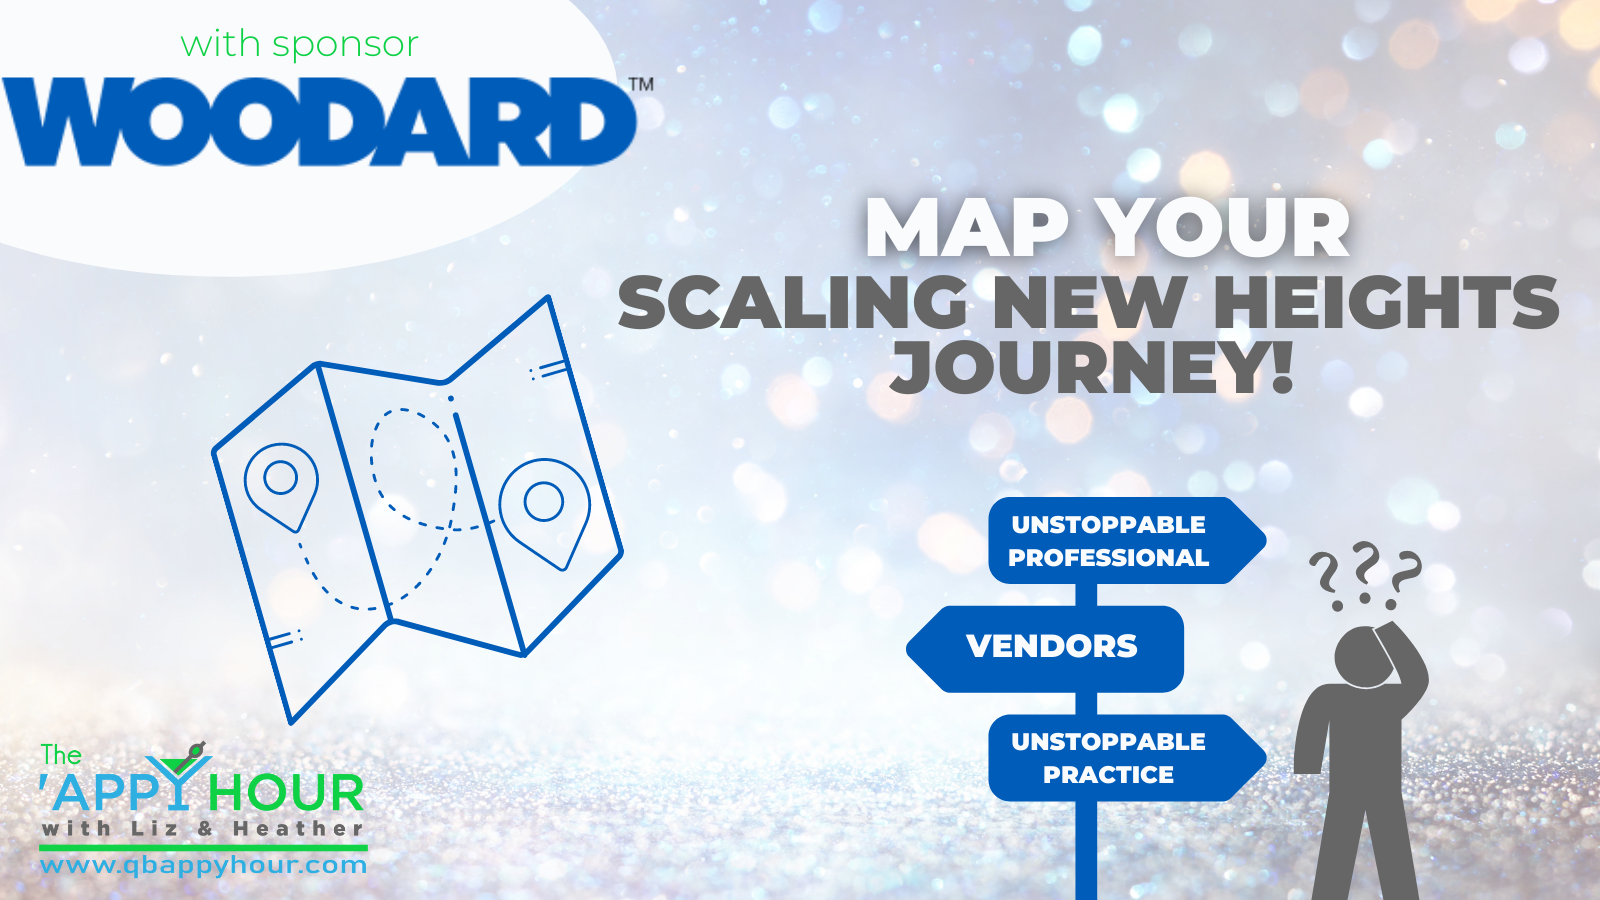 Map Your Scaling New Heights Journey With Woodard